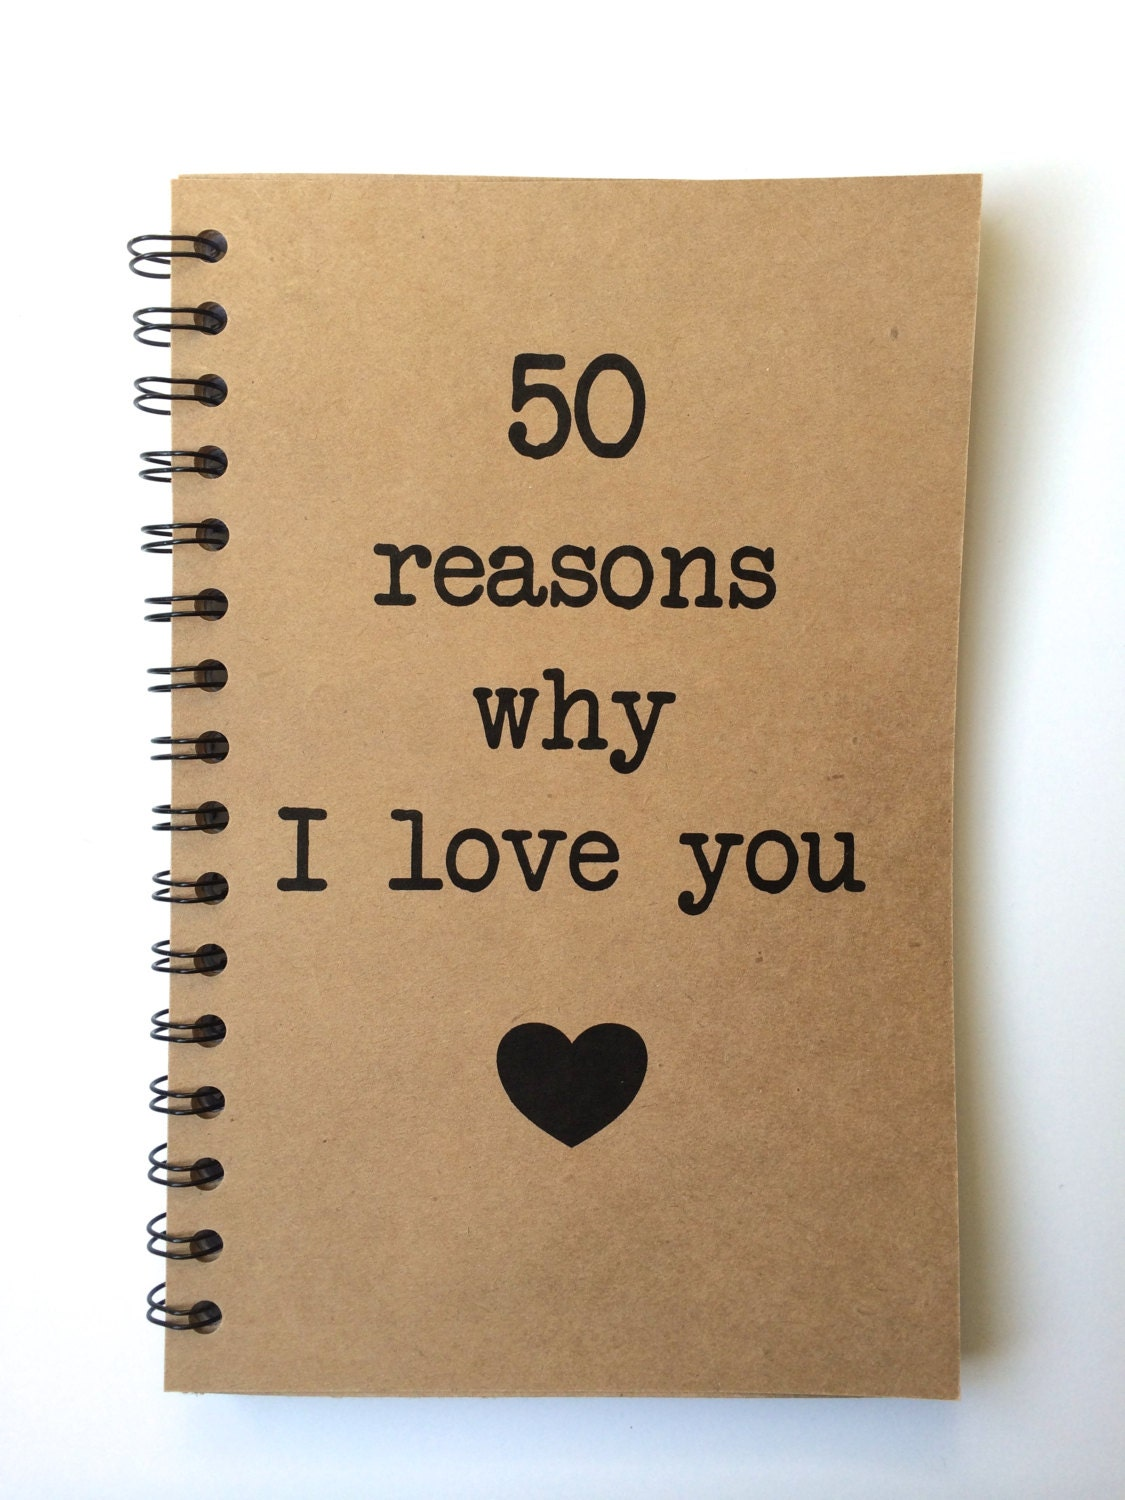 Reasons Why Makeup Is Important: Notebook 50 Reasons Why I Love You Love Notes Journal